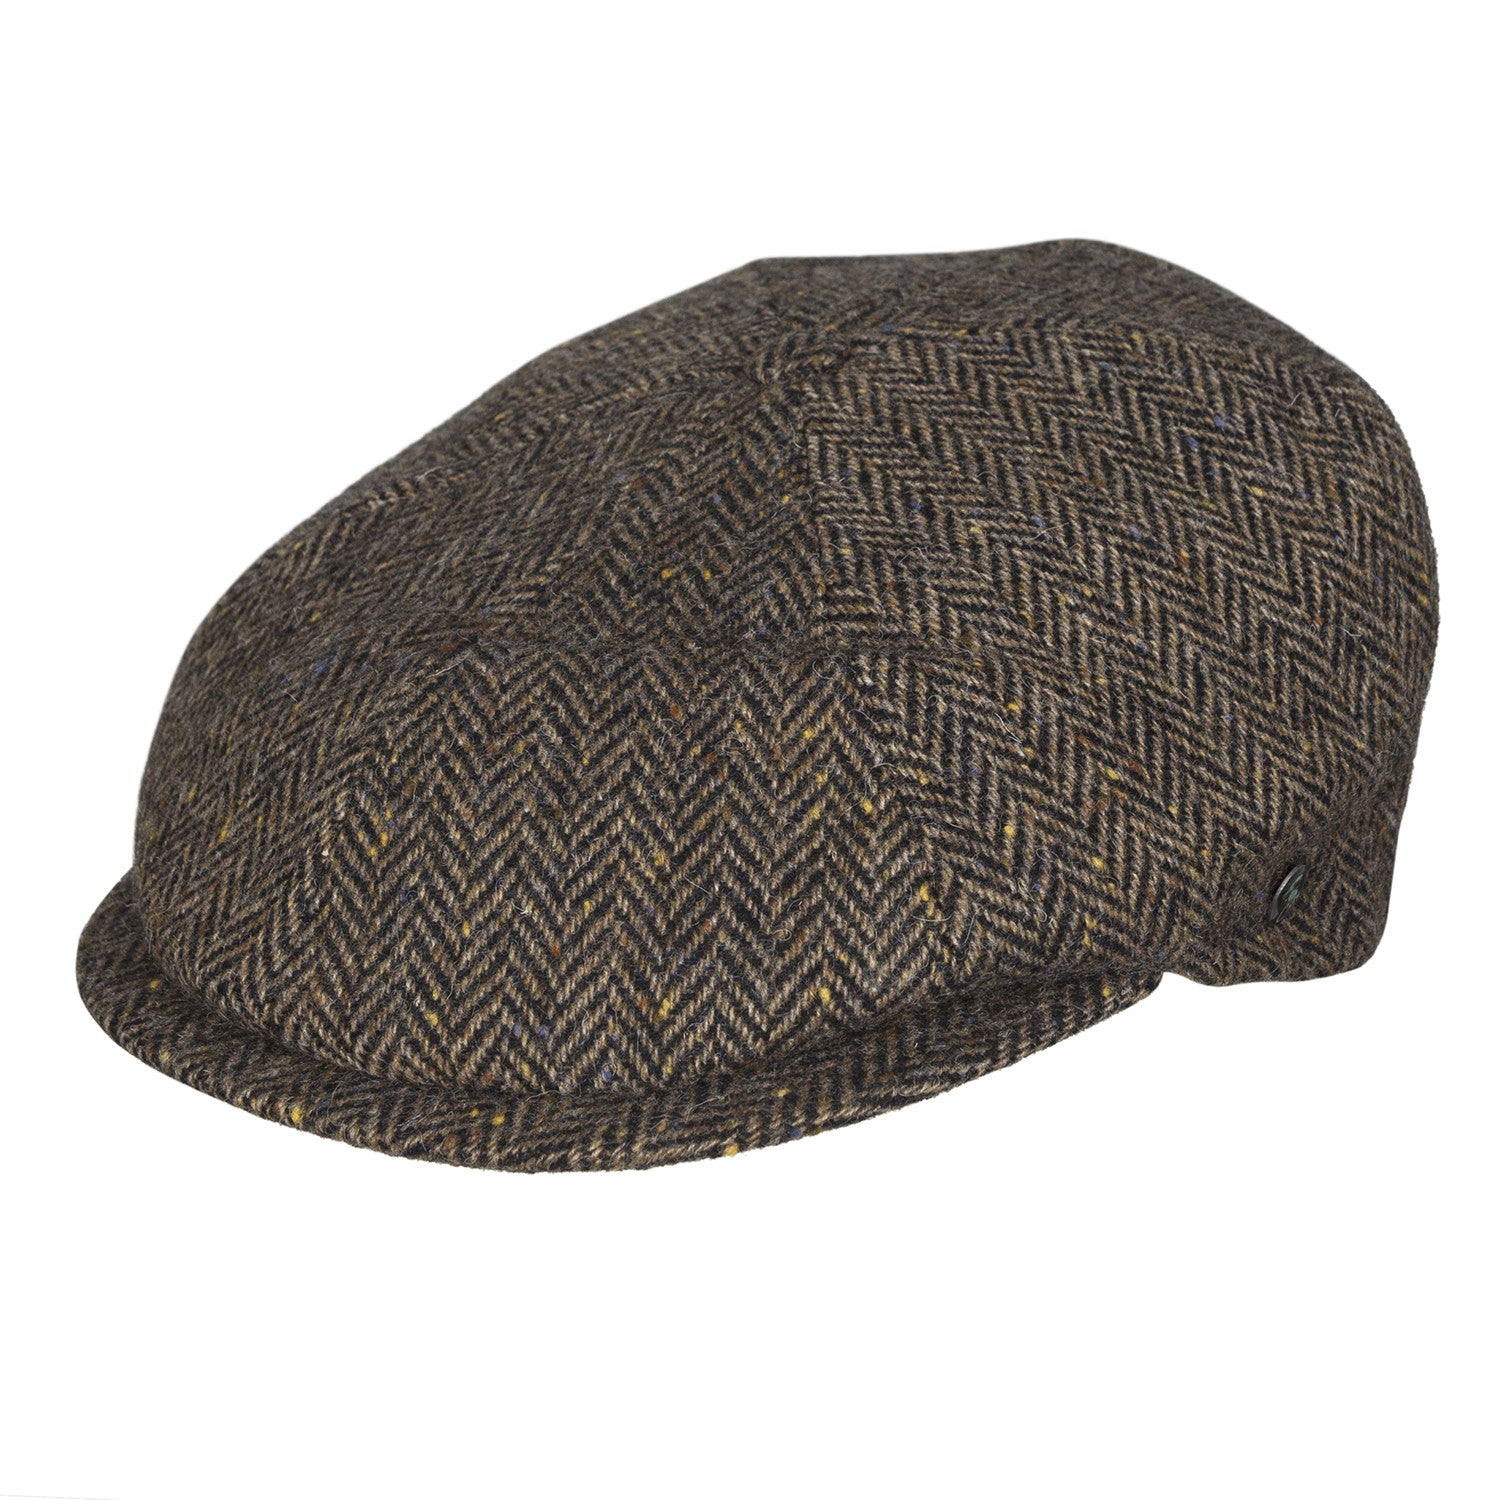 Donegal Tweed newsboy cap | Brown Herringbone | buy now at The Cashmere Choice London